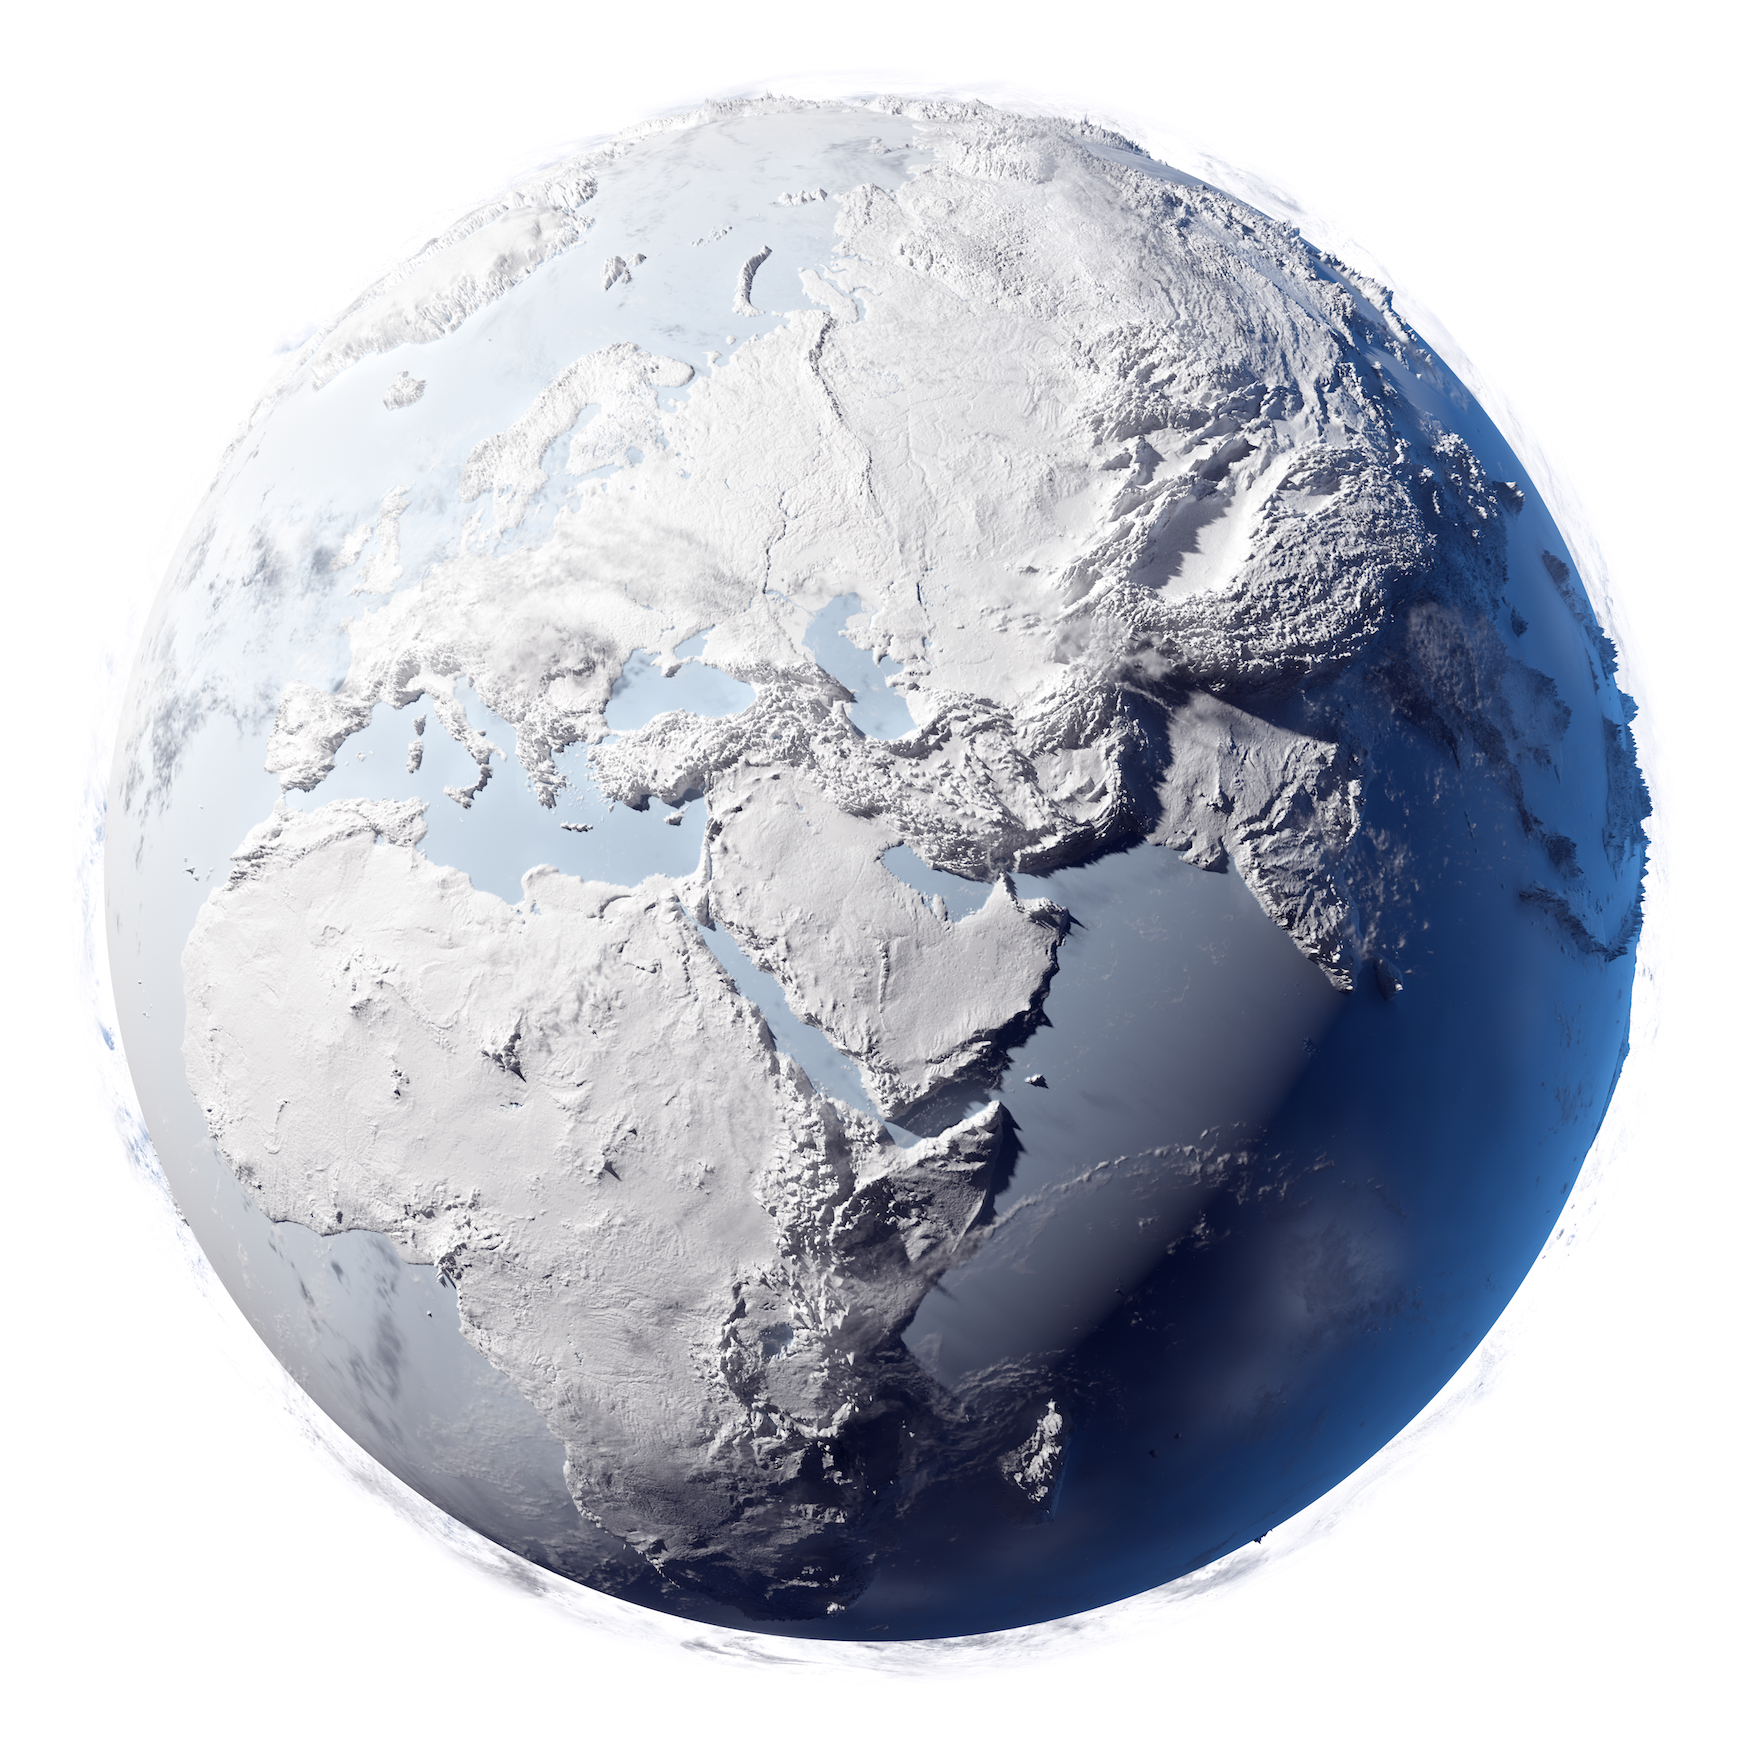 300 Million Years Ago Coal Almost Turned The Earth To Ice